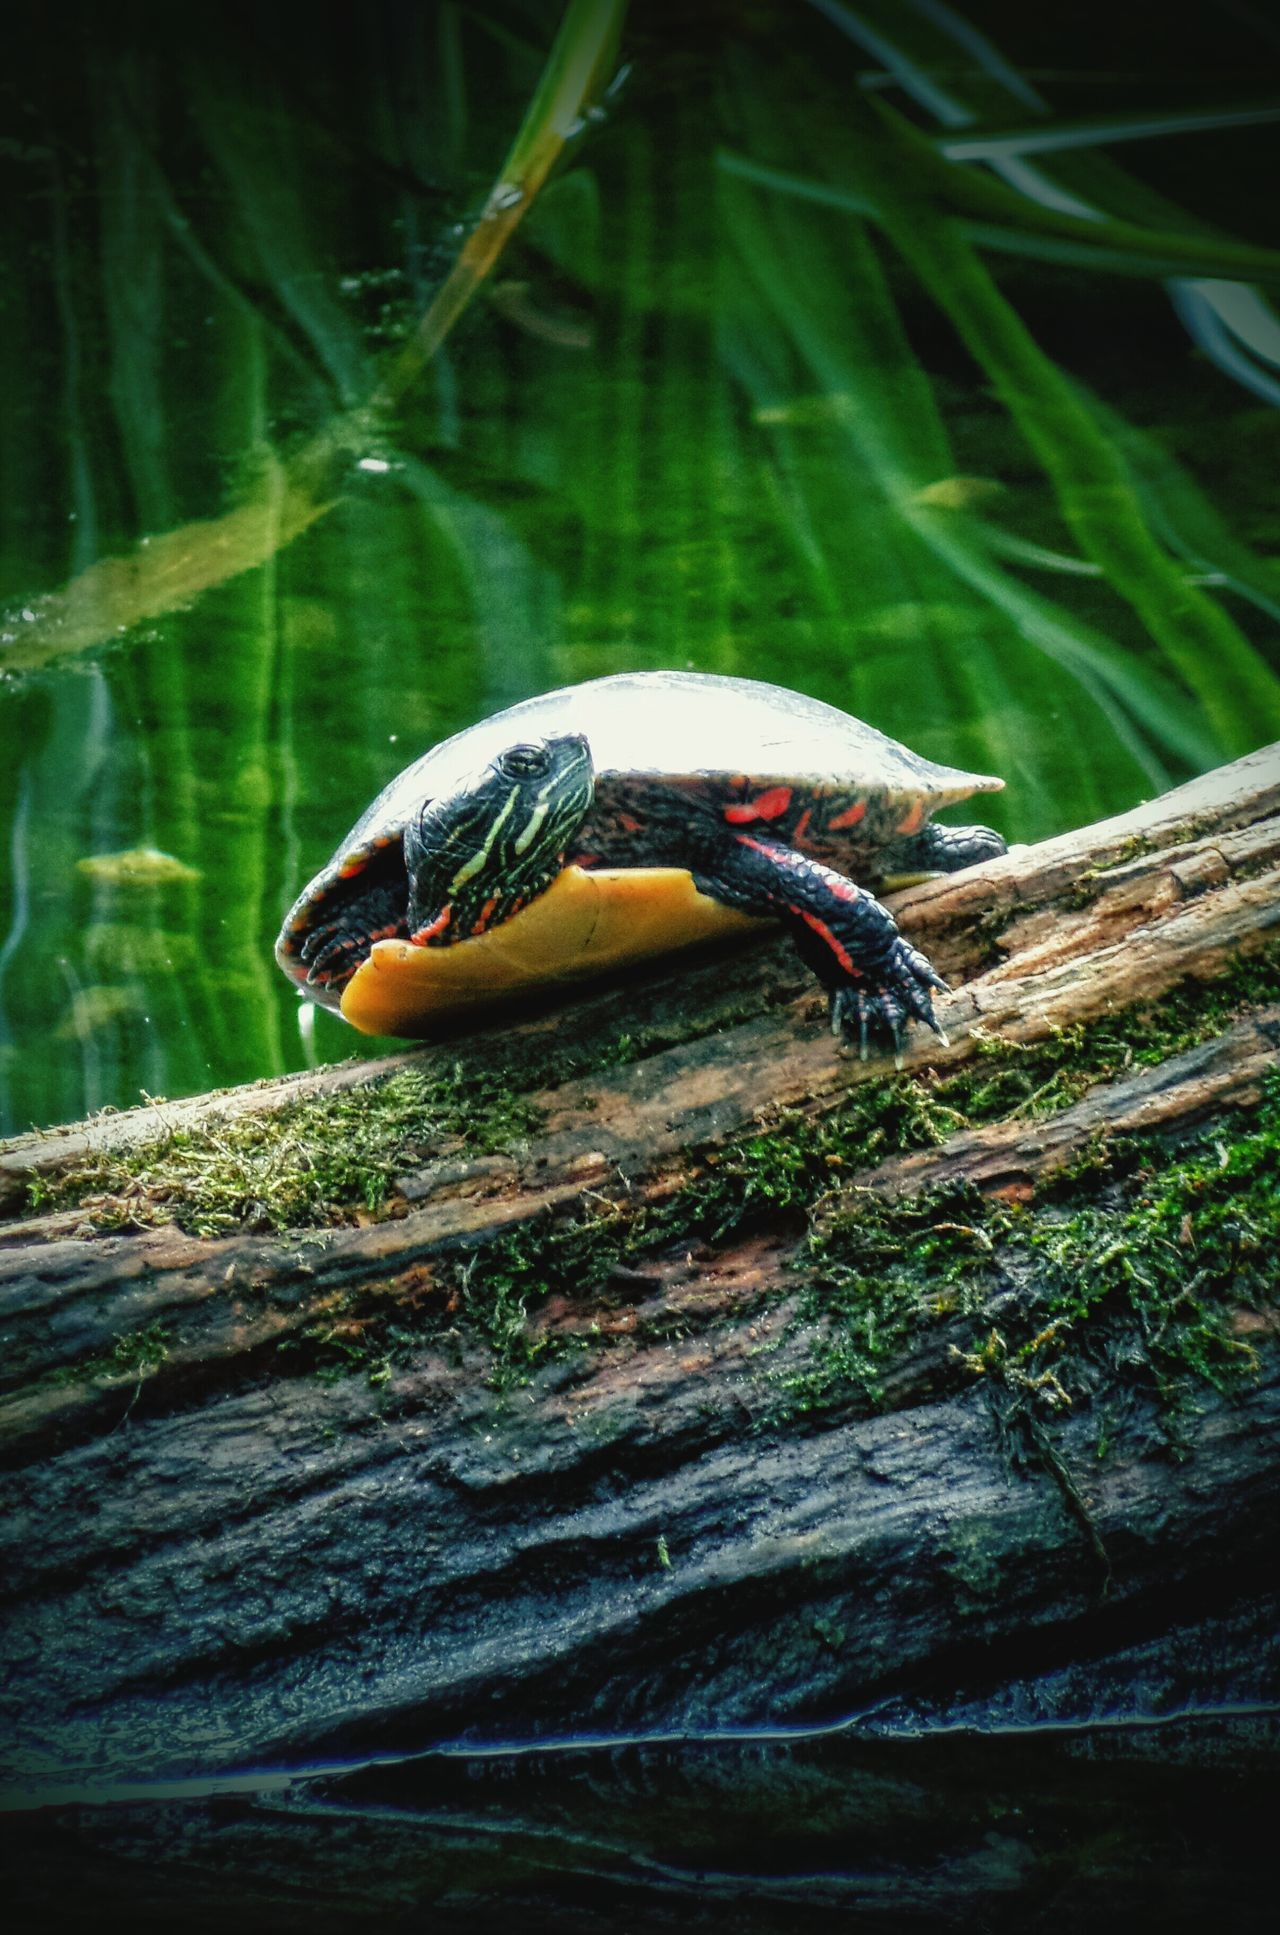 Striking A Pose Turtle Turtle 🐢 Turtles(: Turtles In The Sun Reptile Reptiles Reptile Photography Reptiles & Amphibians Pond Pond Life EyeEm EyeEm Gallery EyeEm Best Shots EyeEm Nature Lover EyeEm Best Shots - Nature EyeEm Best Edits EyeEmBestPics Eyeemphotography EyeEm Masterclass EyeEmbestshots Eyeem Market EyeEm The Best Shots Eyeem Photography Eyeem Turtles EyeEm Animal Lover